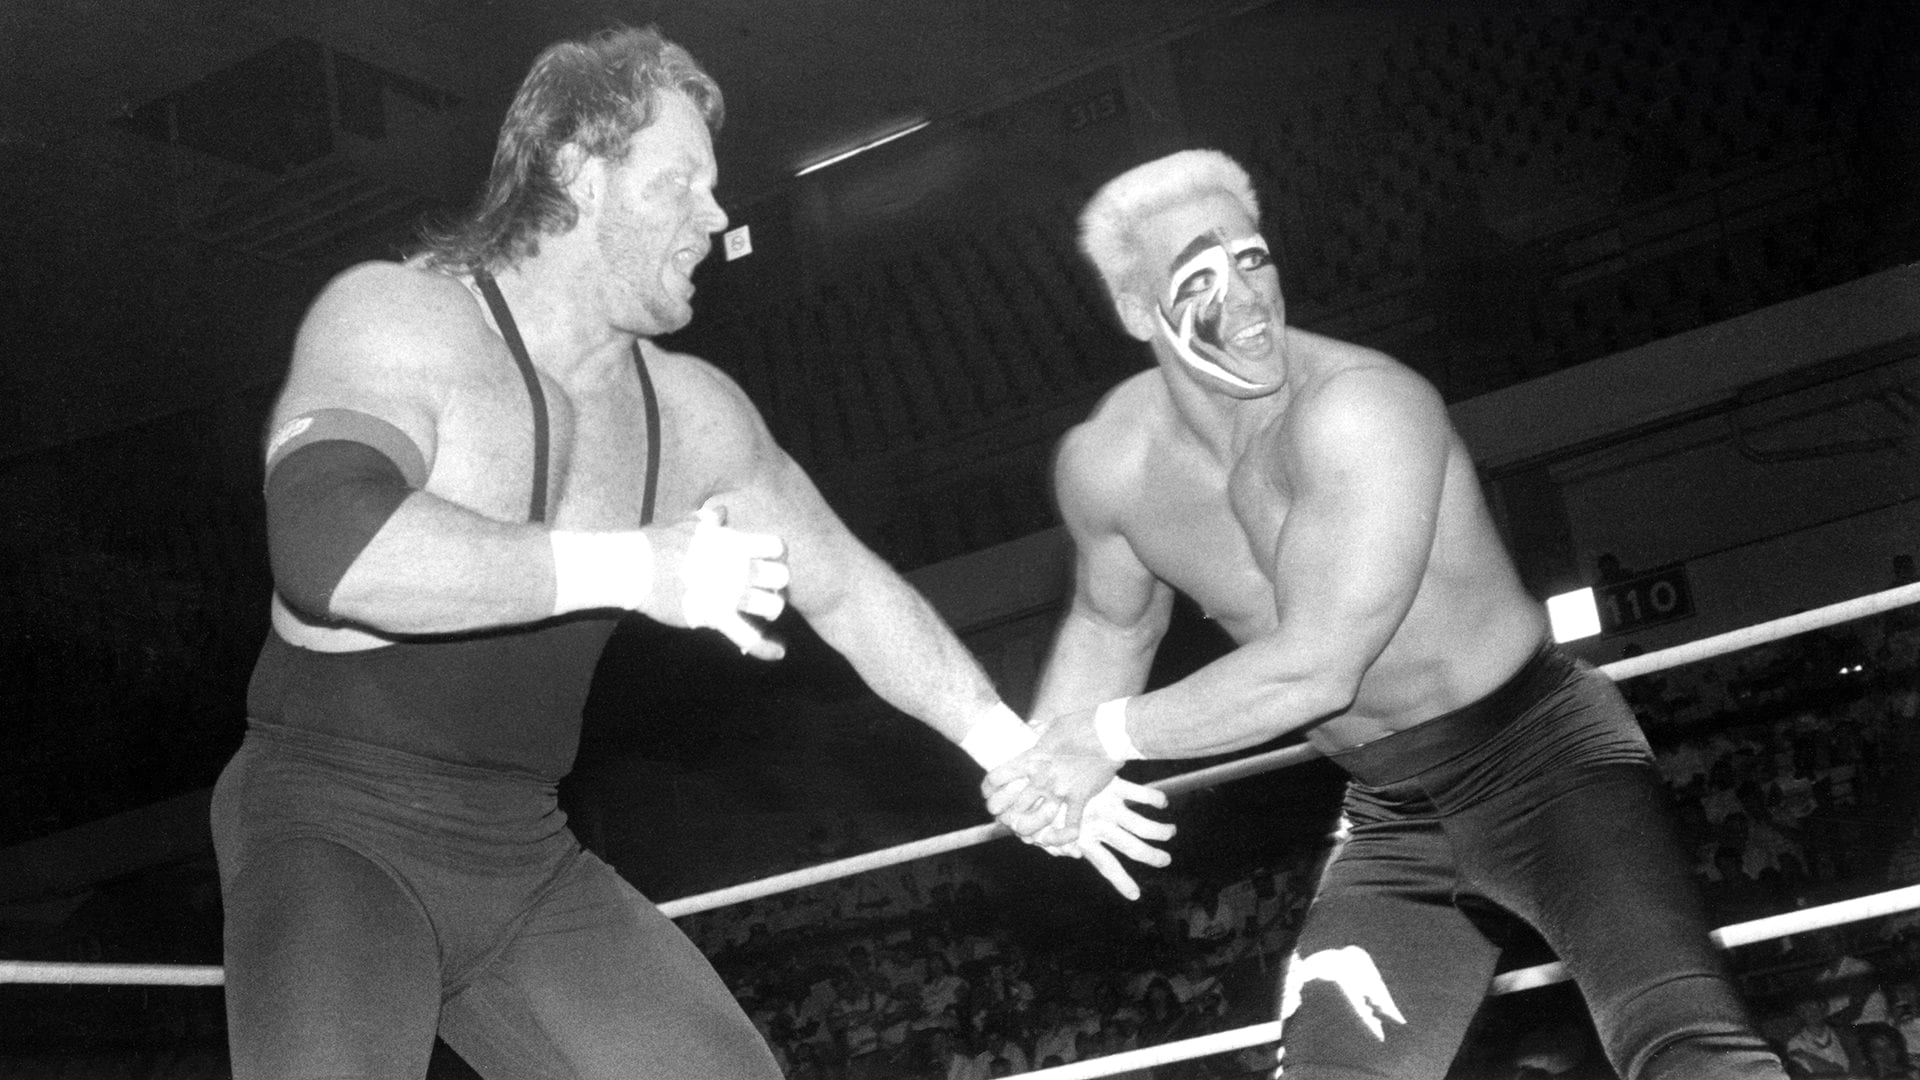 The Undertaker vs. Sting Real Photo From WCW 1990